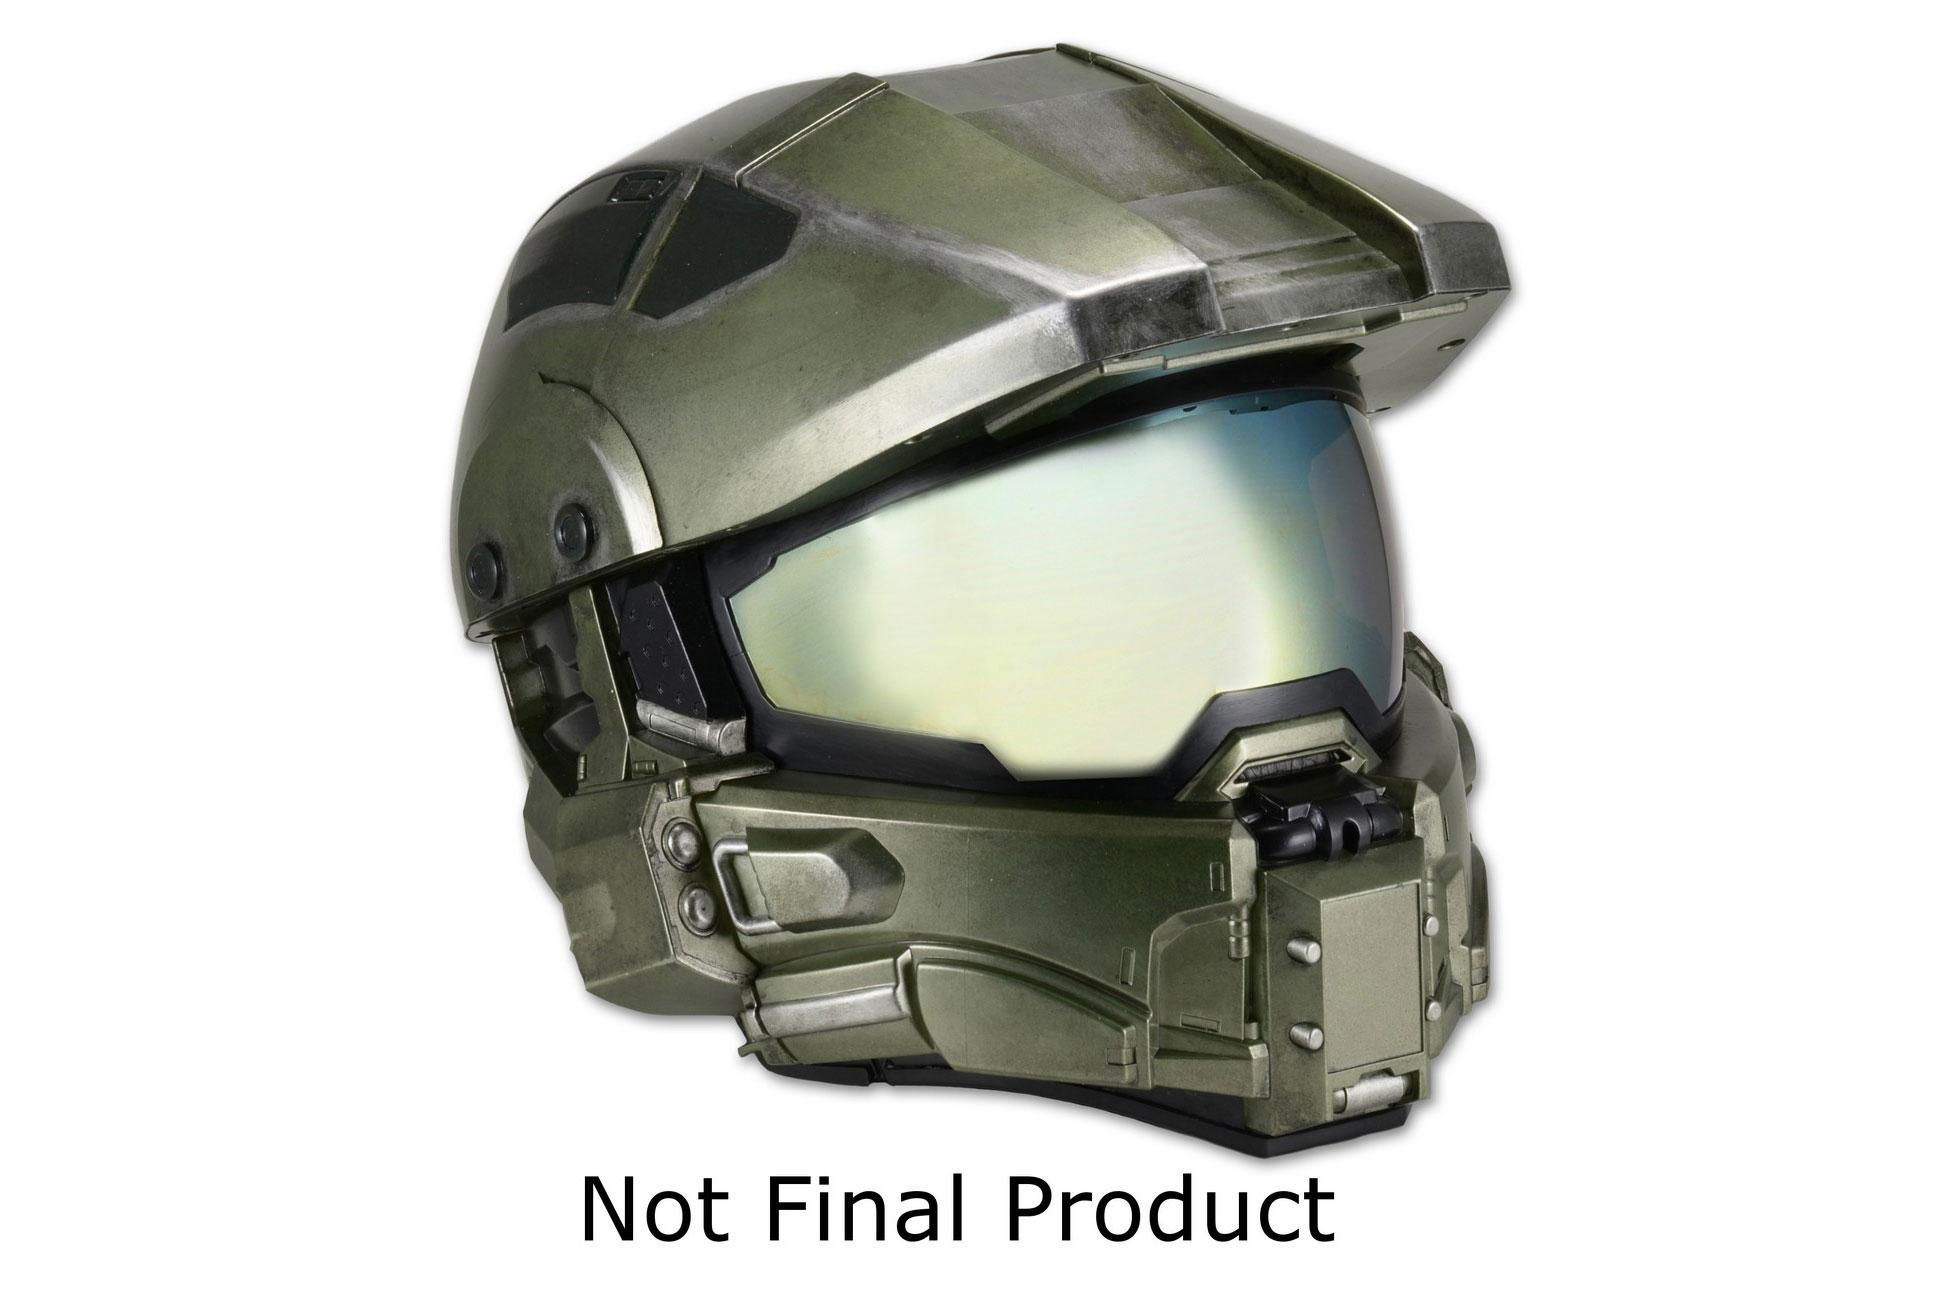 Halo s iconic master chief helmet is now motorcycle safety gear